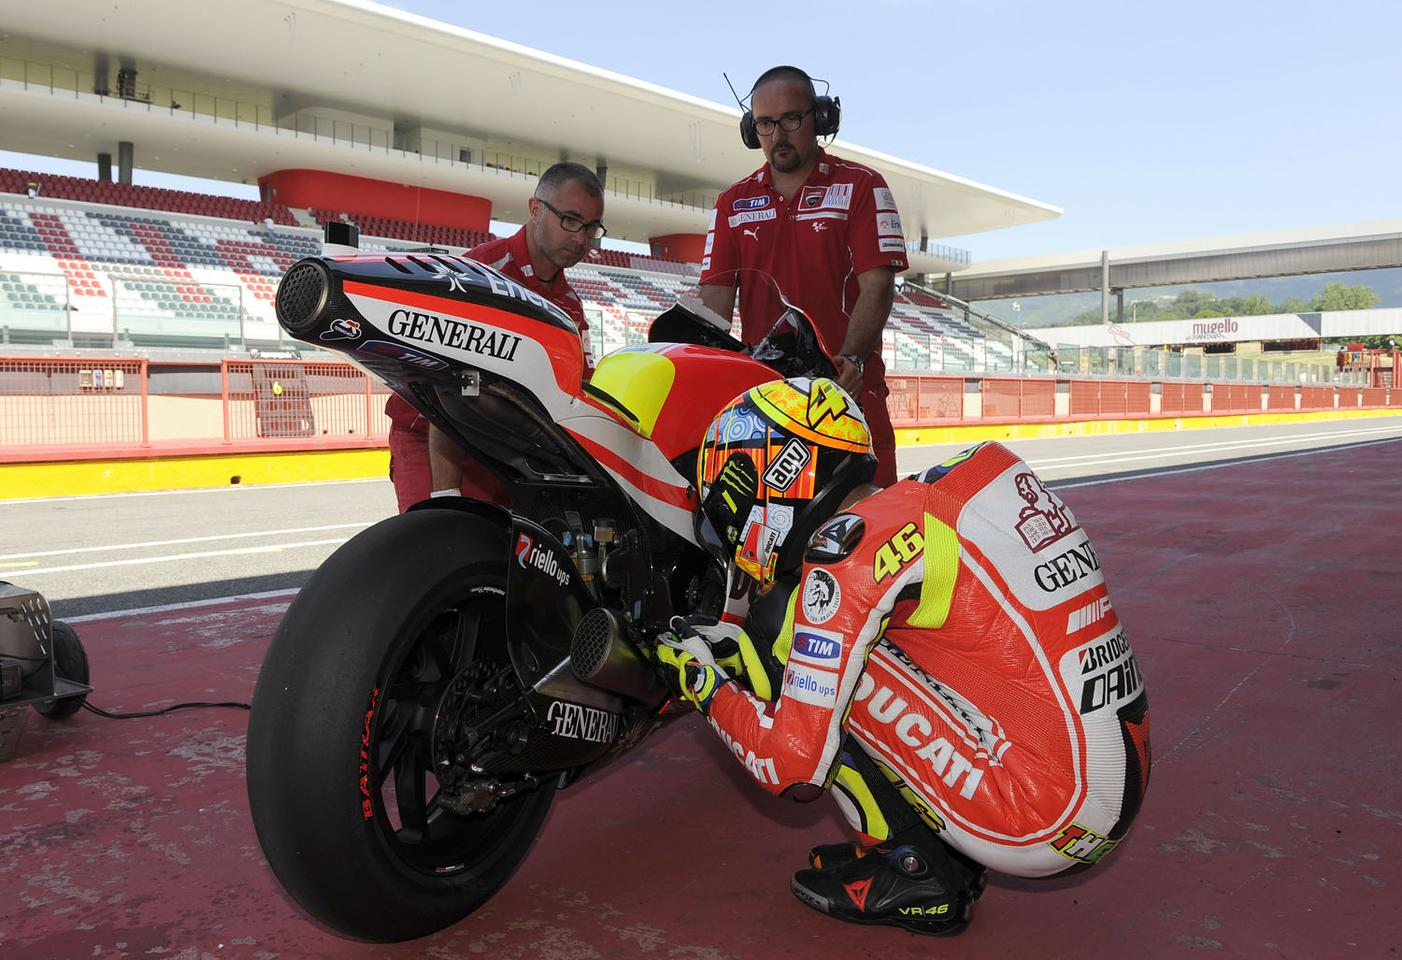 Rossi says a little prayer - is he asking for a traditional chassis?